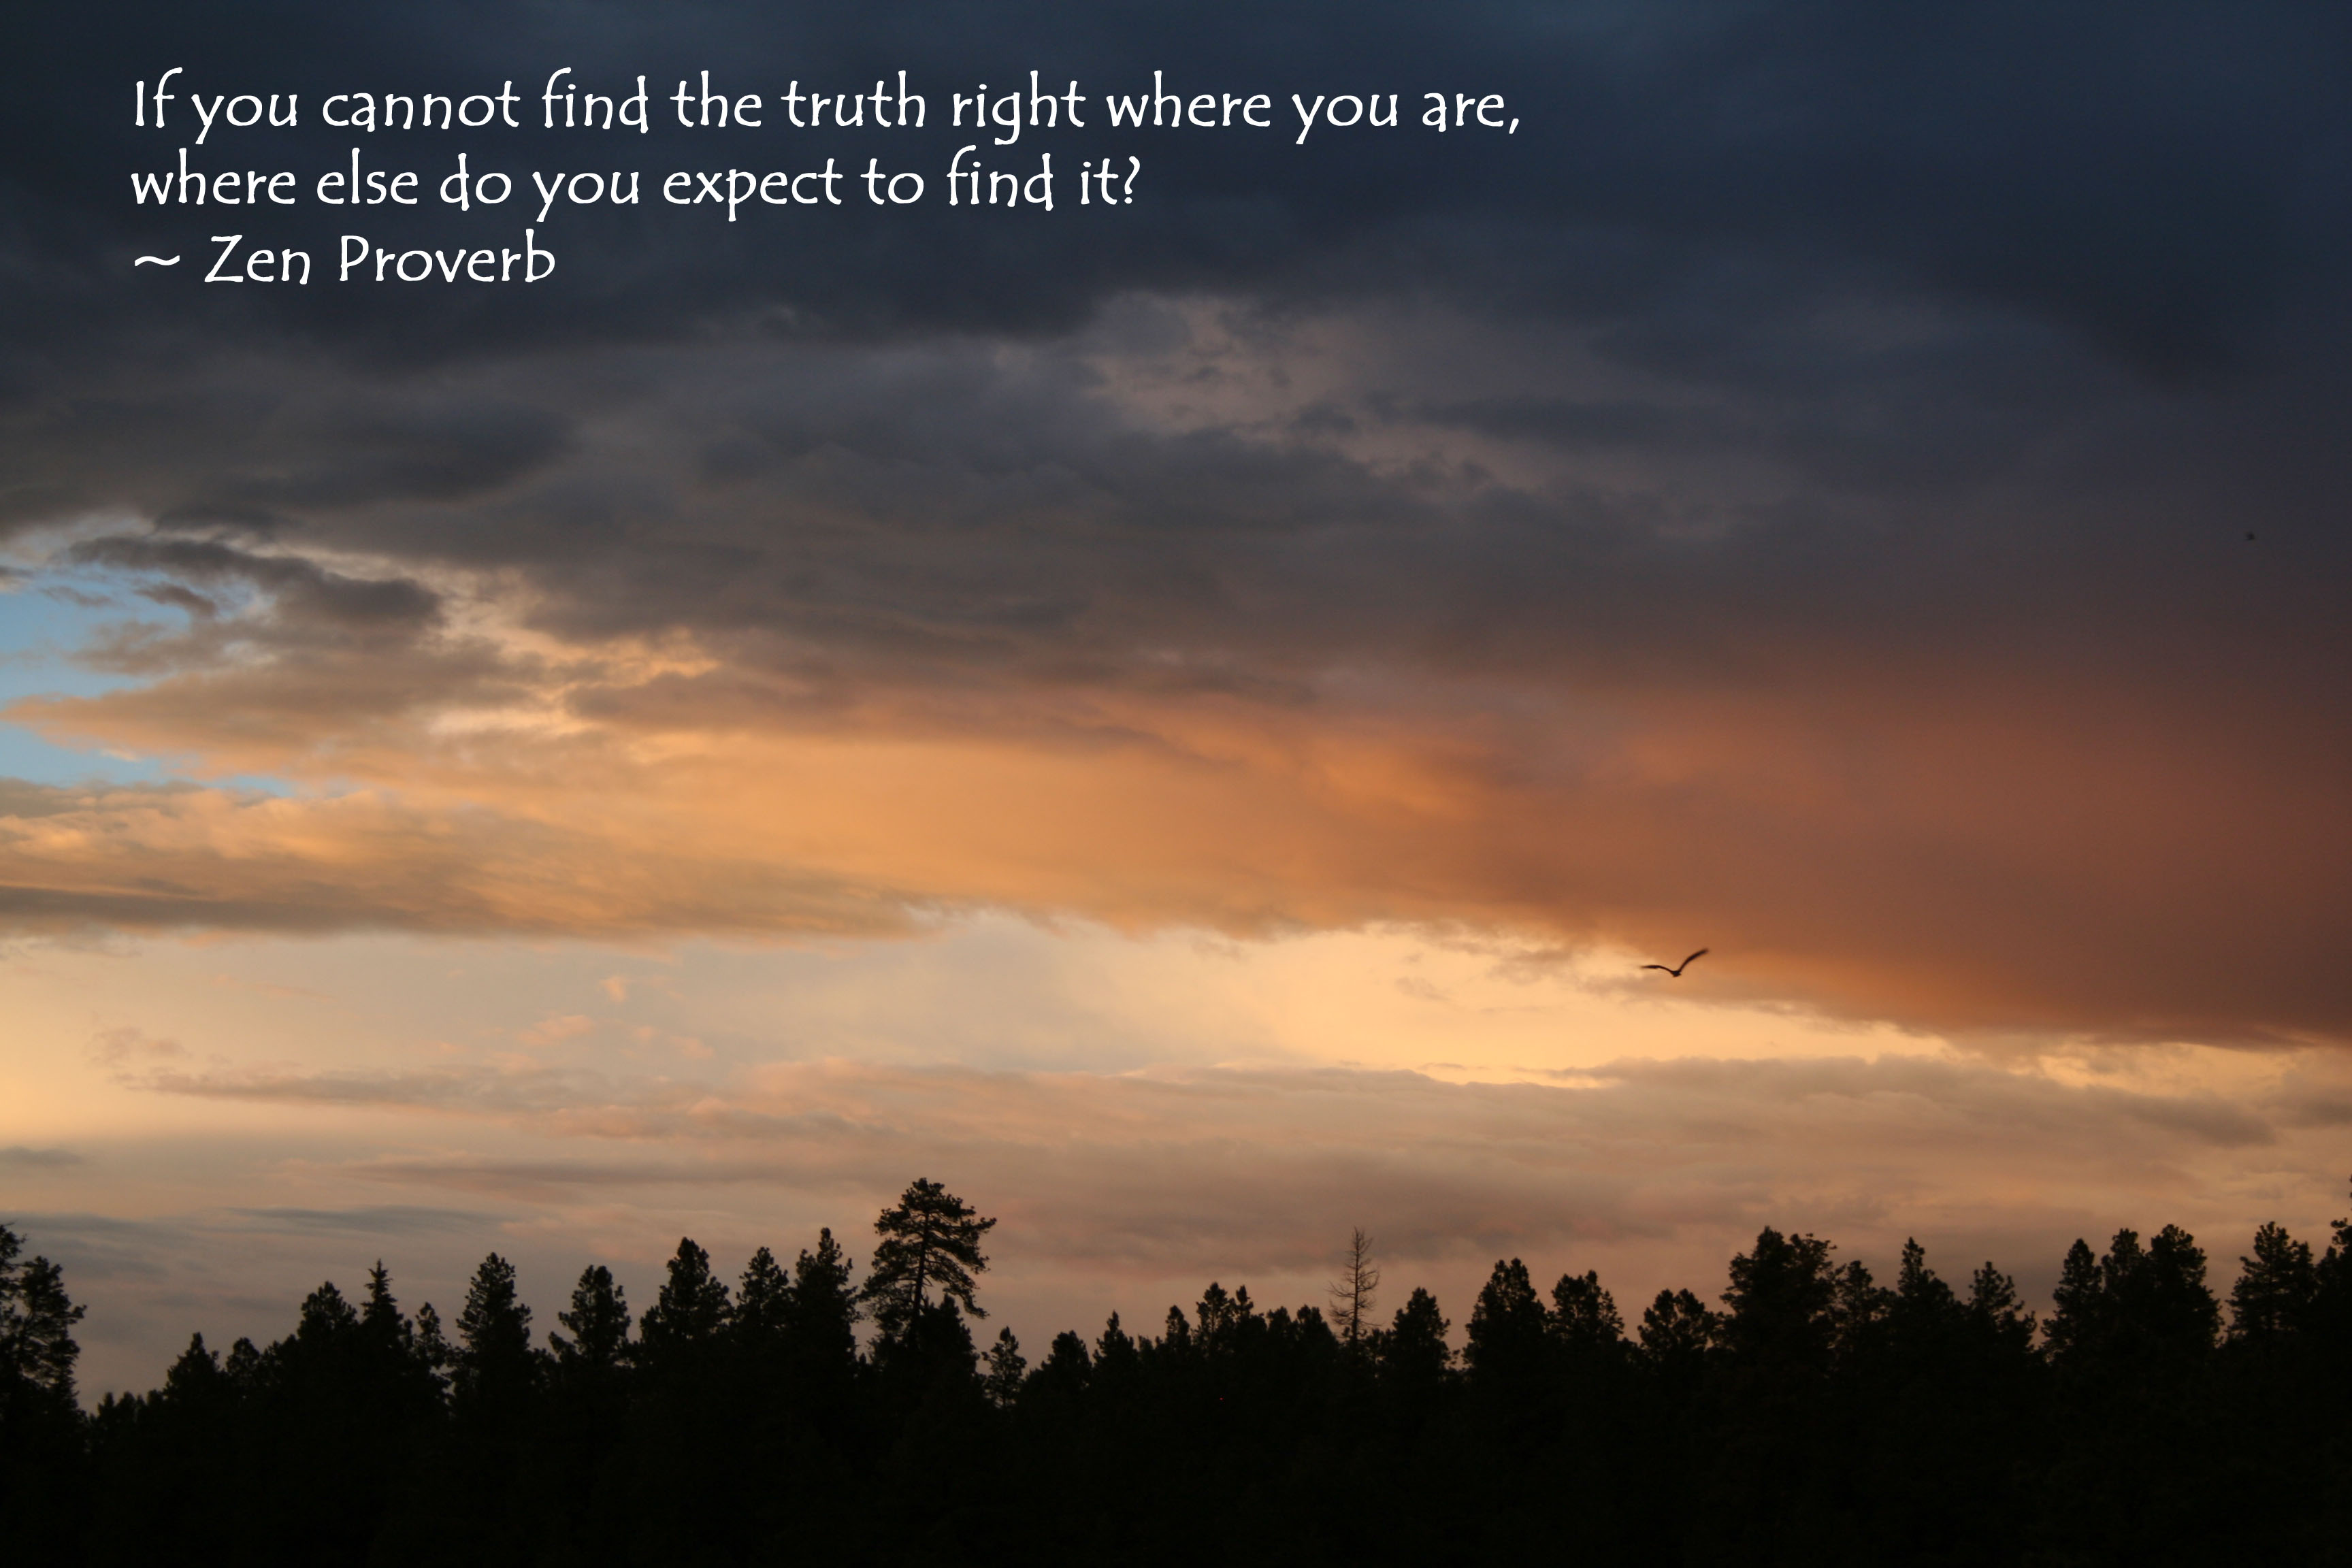 """If you cannot find the truth right where you are, where else do you expect to find it?"" - Zen proverb written on photo of sunset above trees."